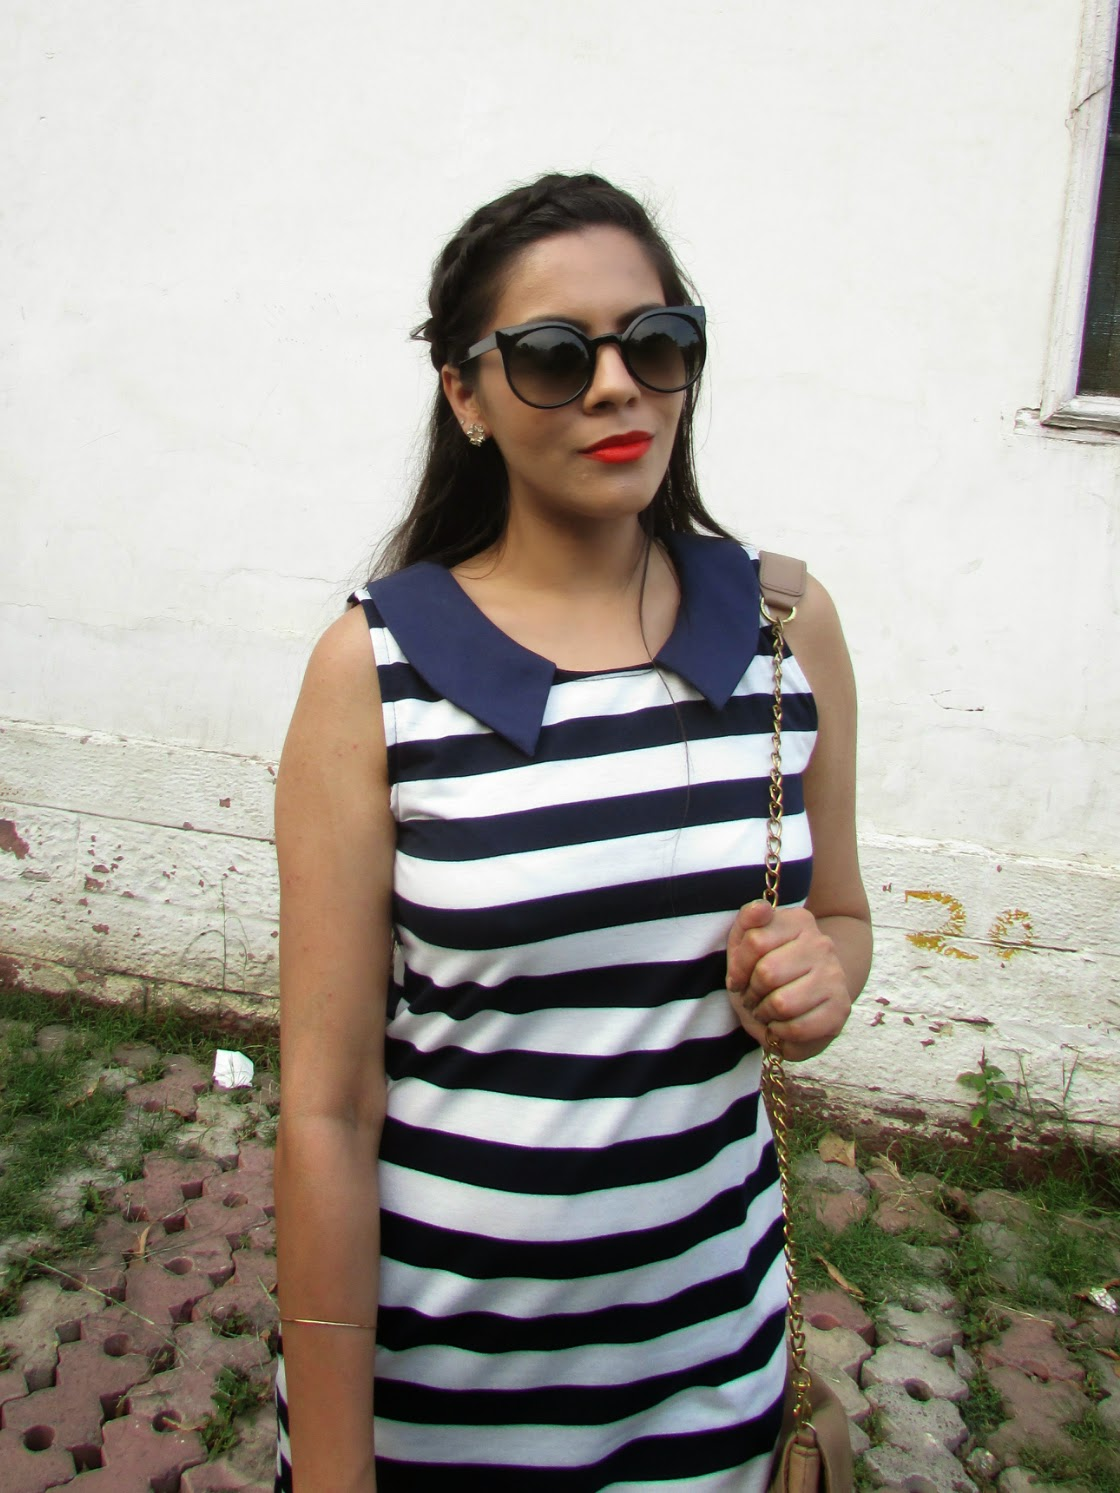 strip dress, cheap strip dress, how to style strip dress, strip dress for summers, blue white strip sleeveless dress, peter pan collar strip dress, fashion, indian fashion blog, cheap dresses online, summer trends 2015, spring dress 2015, beauty , fashion,beauty and fashion,beauty blog, fashion blog , indian beauty blog,indian fashion blog, beauty and fashion blog, indian beauty and fashion blog, indian bloggers, indian beauty bloggers, indian fashion bloggers,indian bloggers online, top 10 indian bloggers, top indian bloggers,top 10 fashion bloggers, indian bloggers on blogspot,home remedies, how to